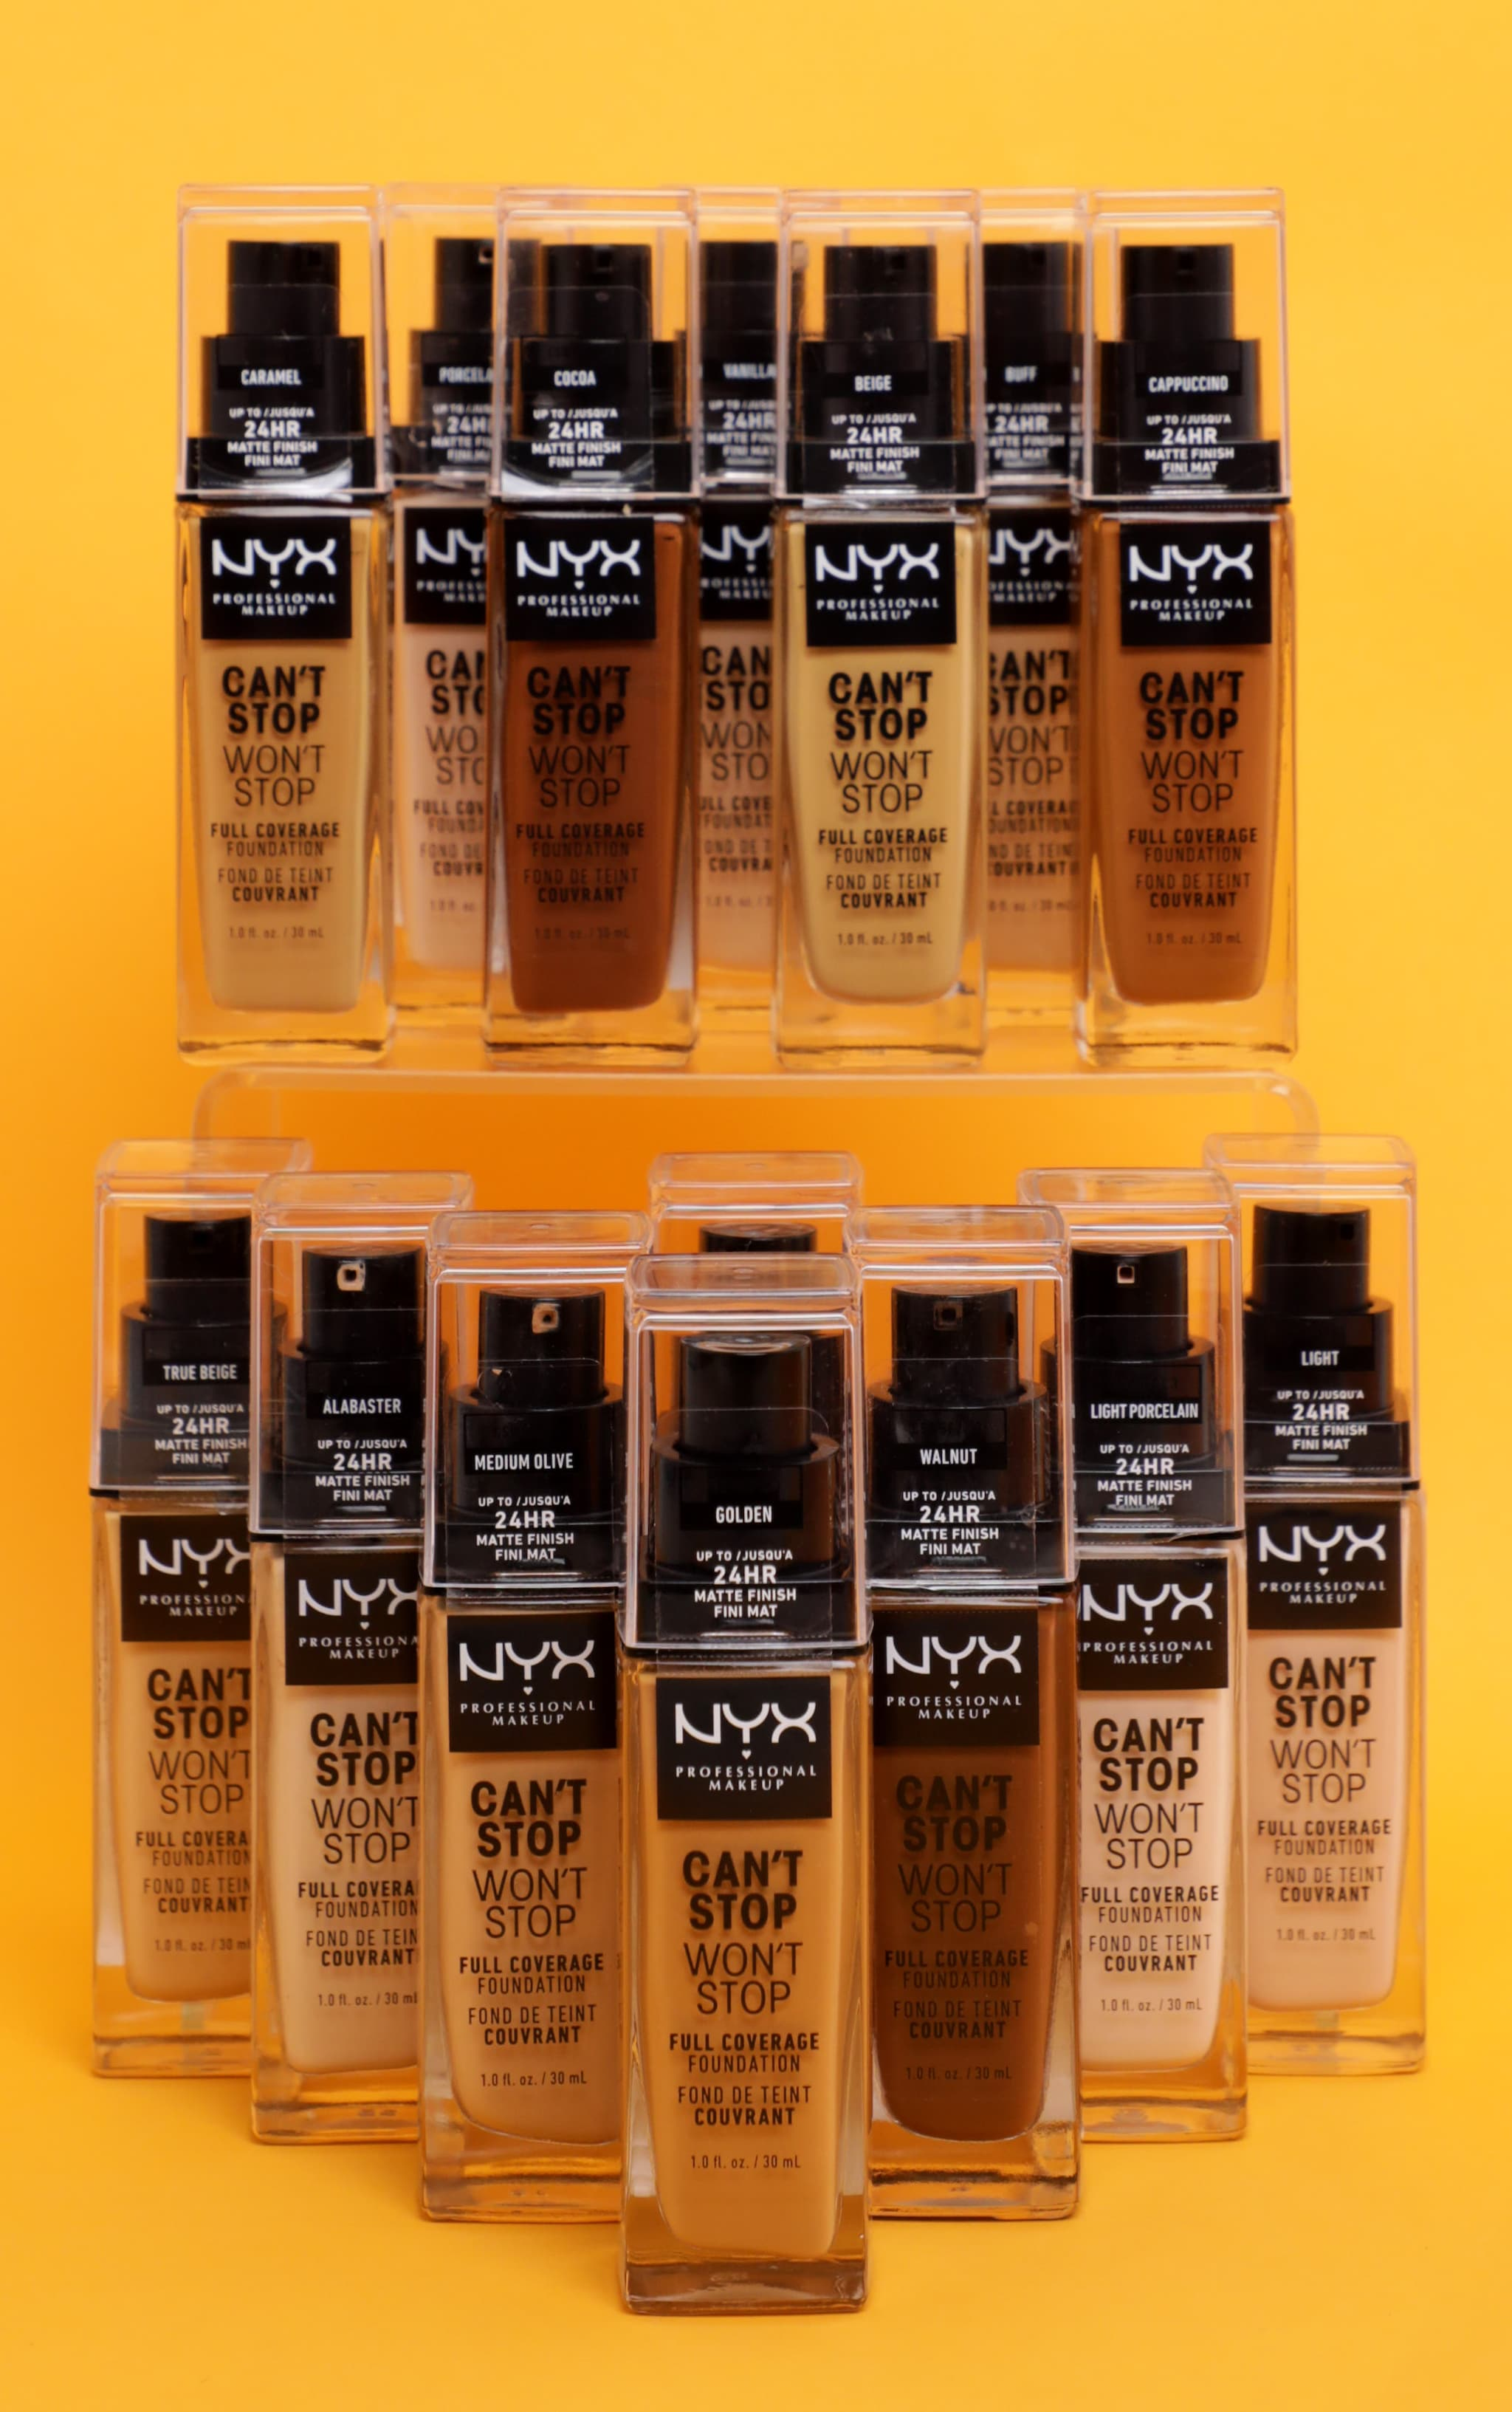 NYX PMU  Can't Stop Won't Stop Full Coverage Foundation Light Porcelain 3